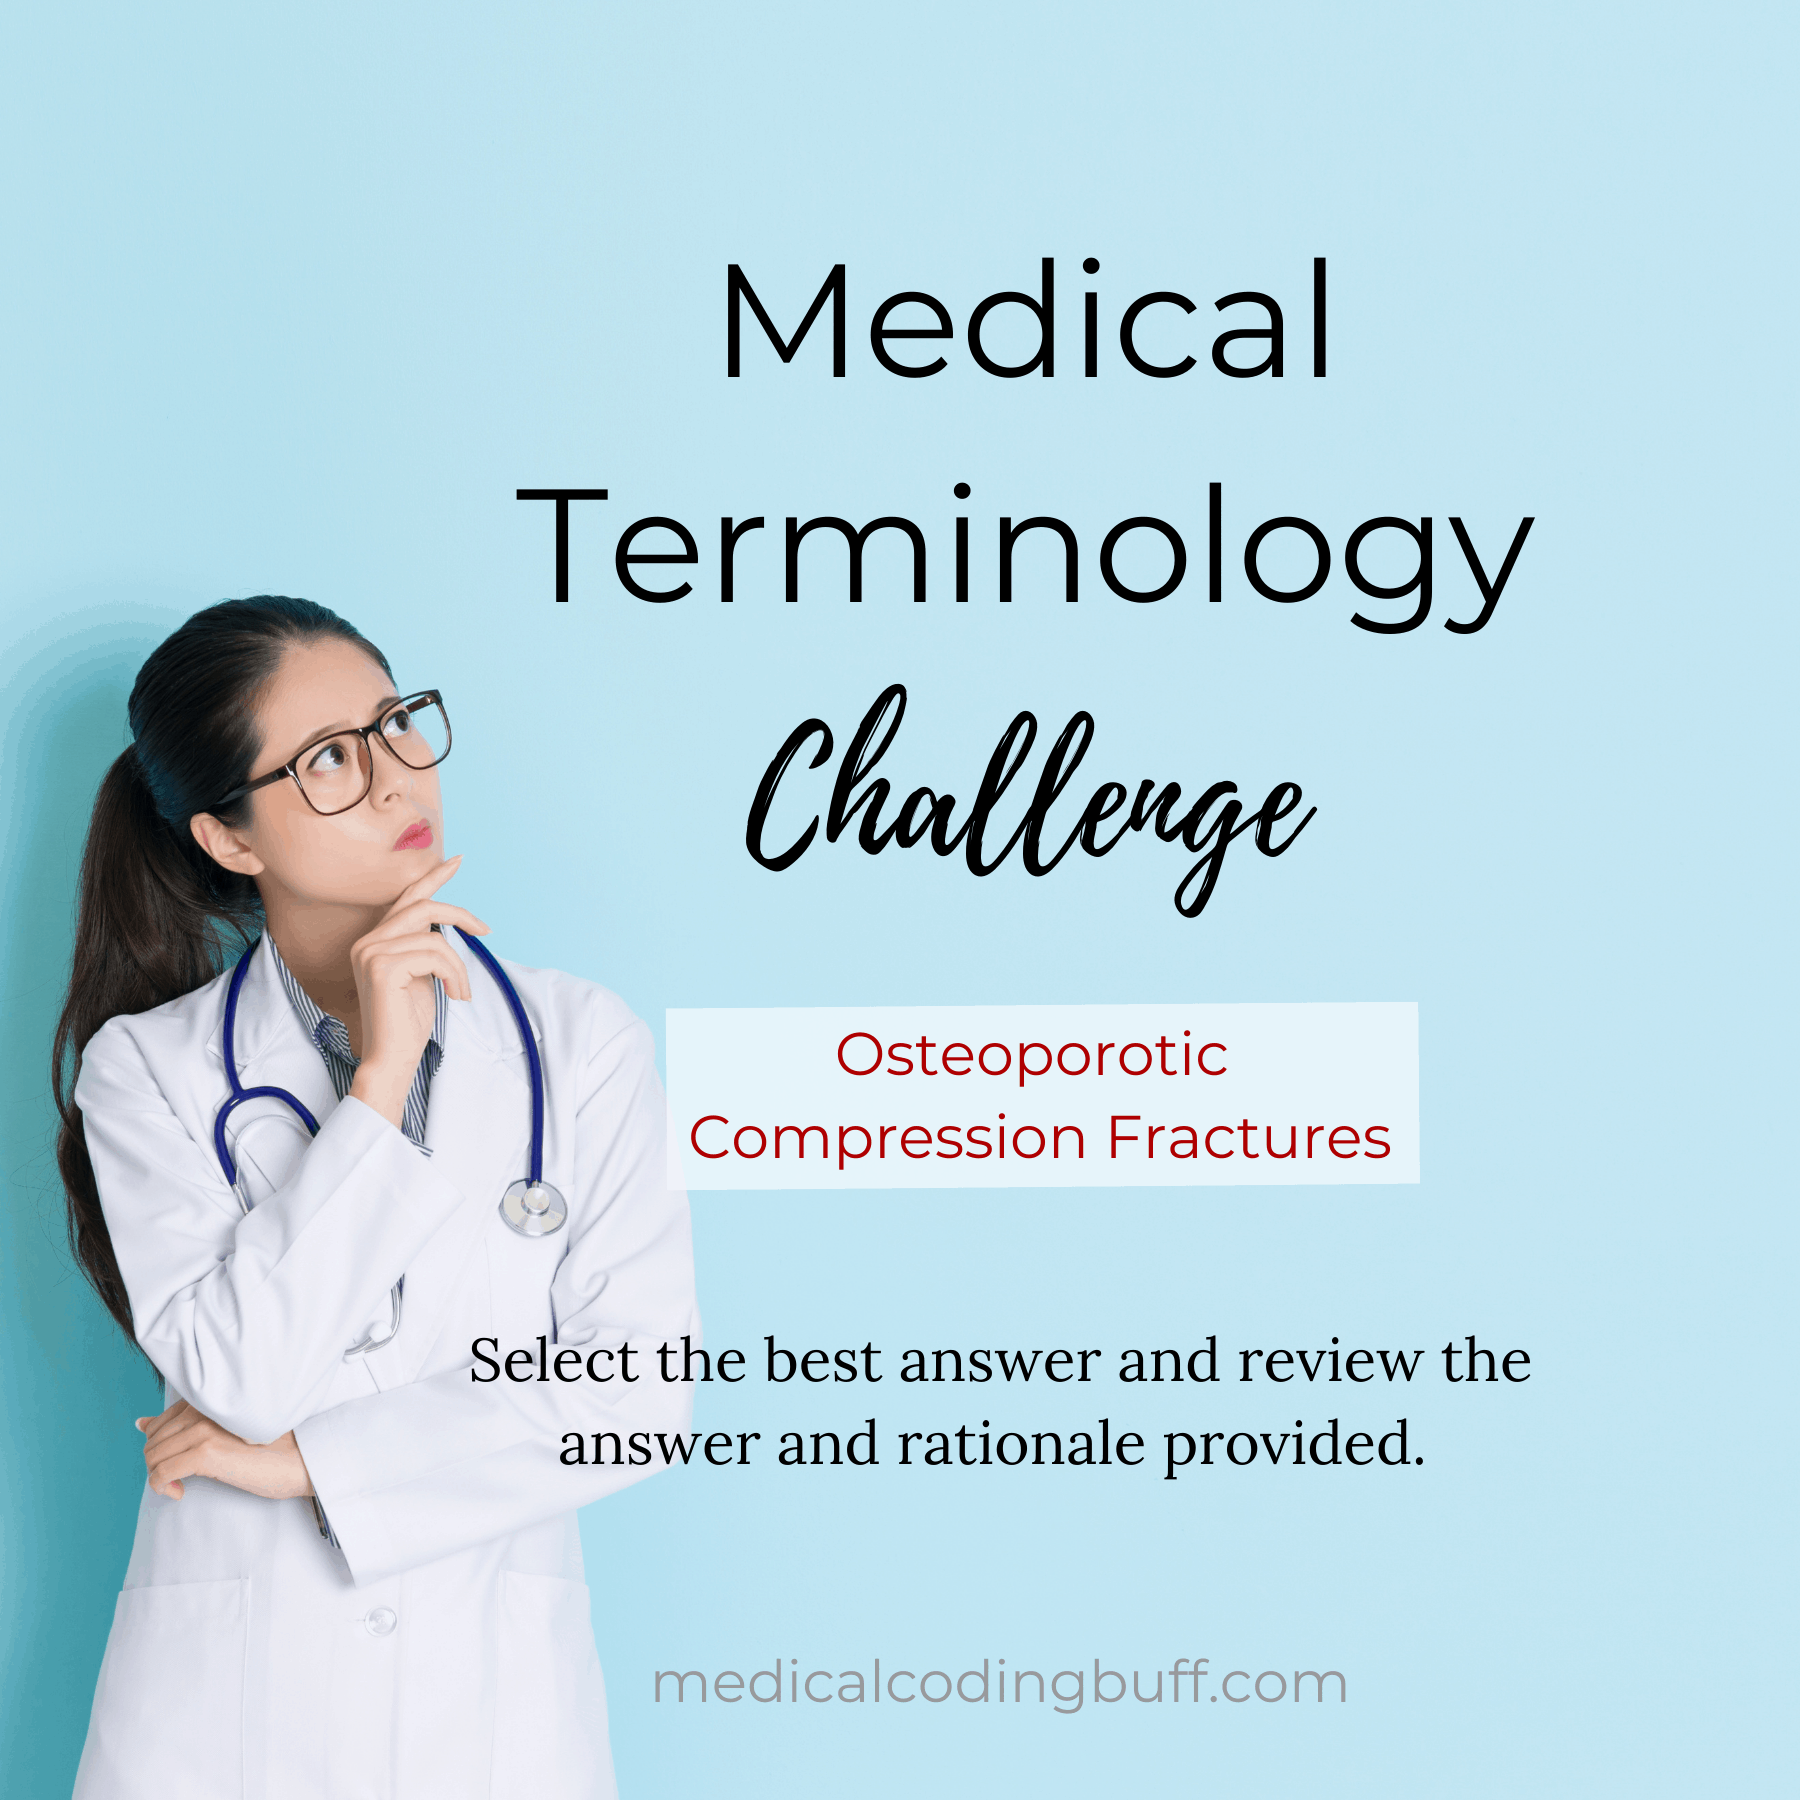 Osteoporotic Compression Fractures: Medical Terminology Challenge